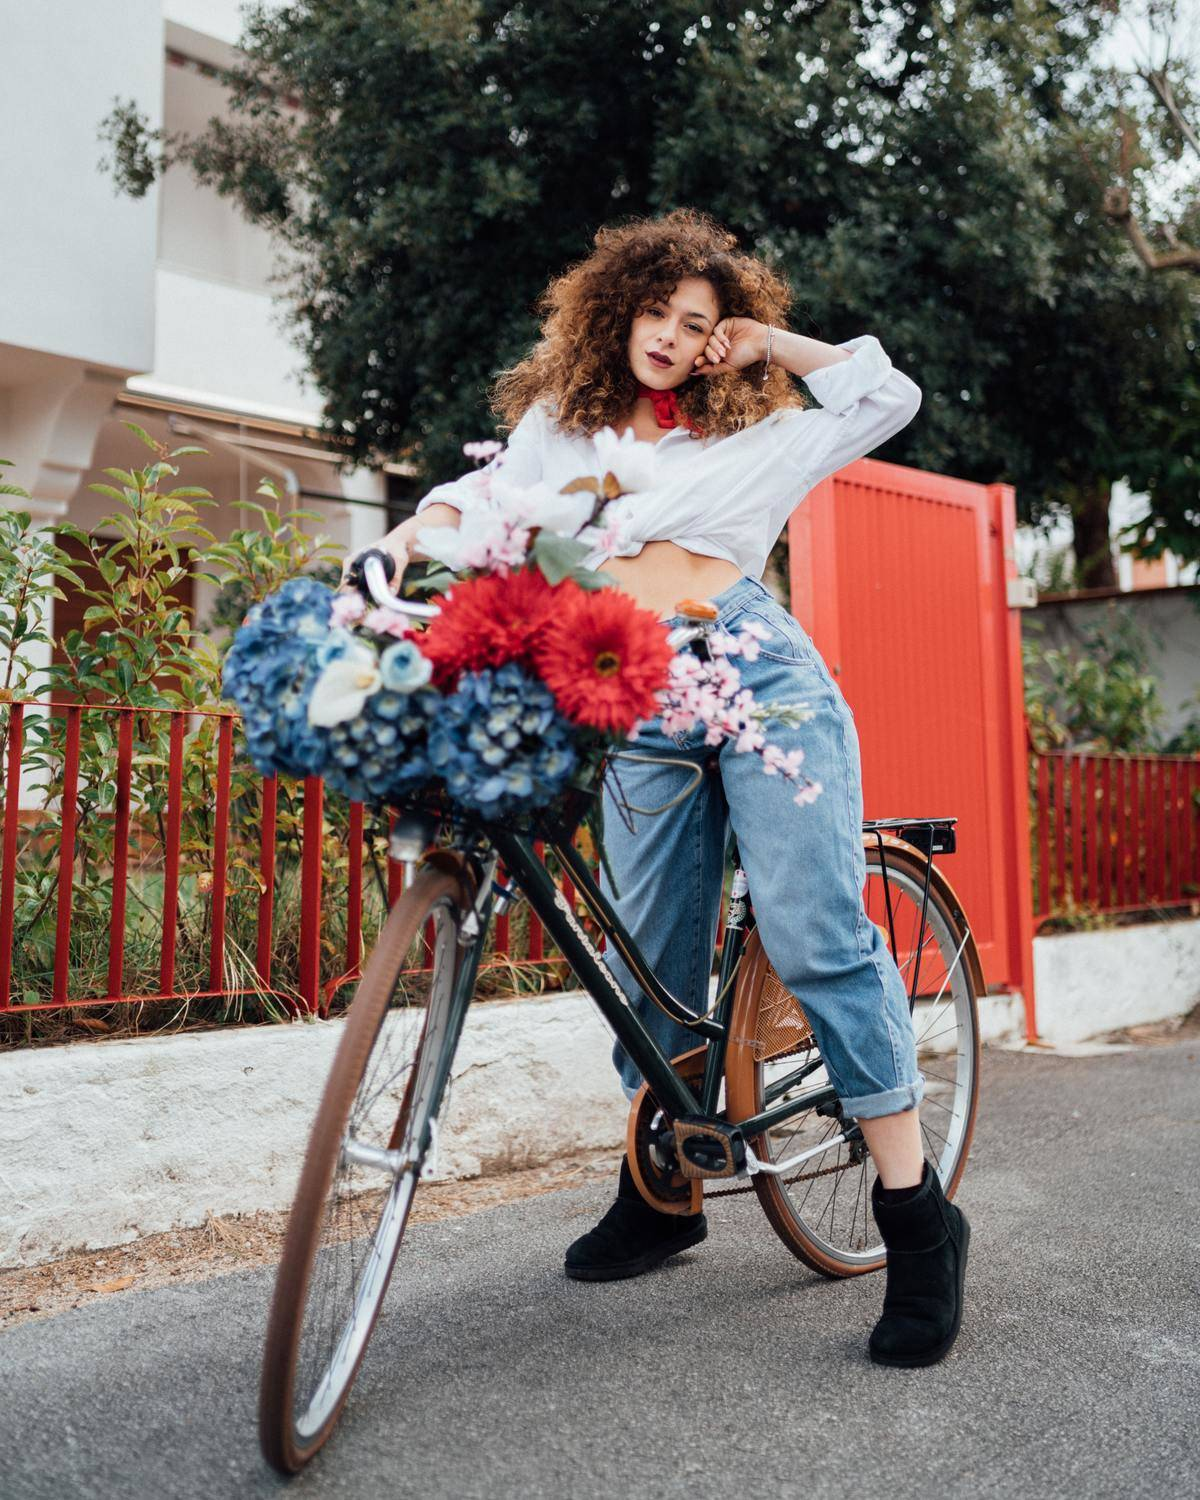 a woman on her bike with flowers in the basket